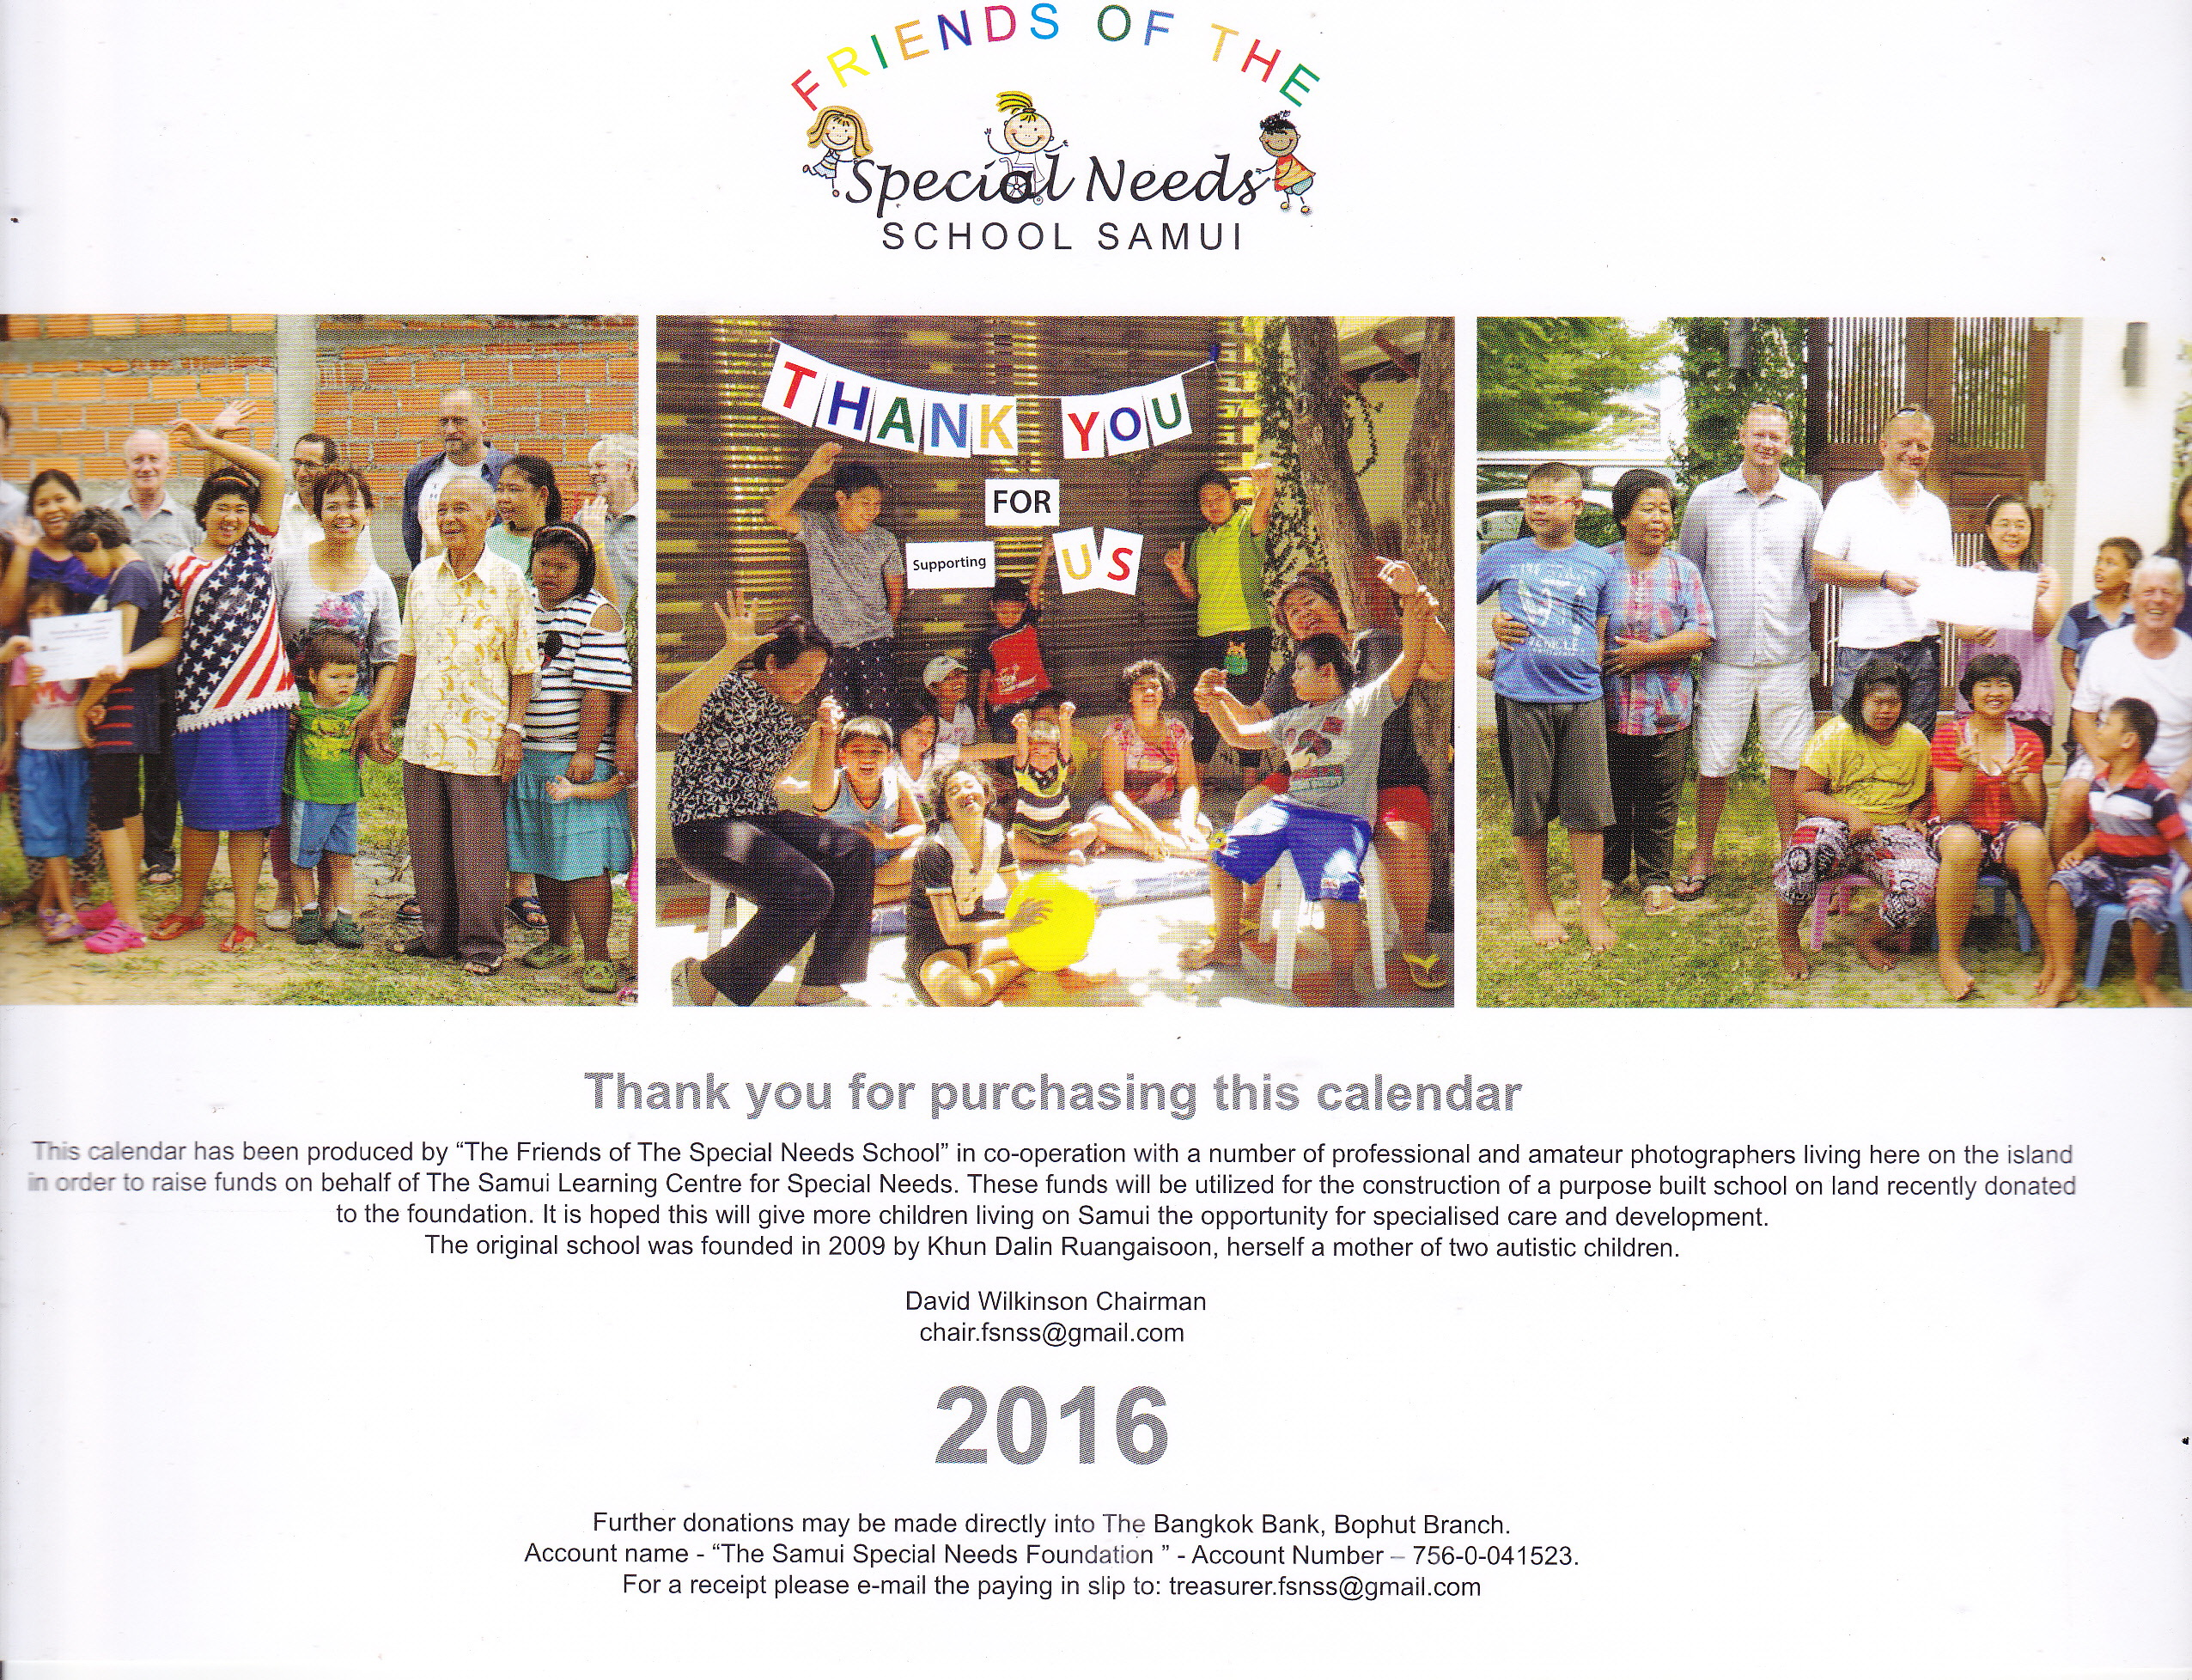 Friends of the Special Needs School 2016 Calendar now available | Samui Times